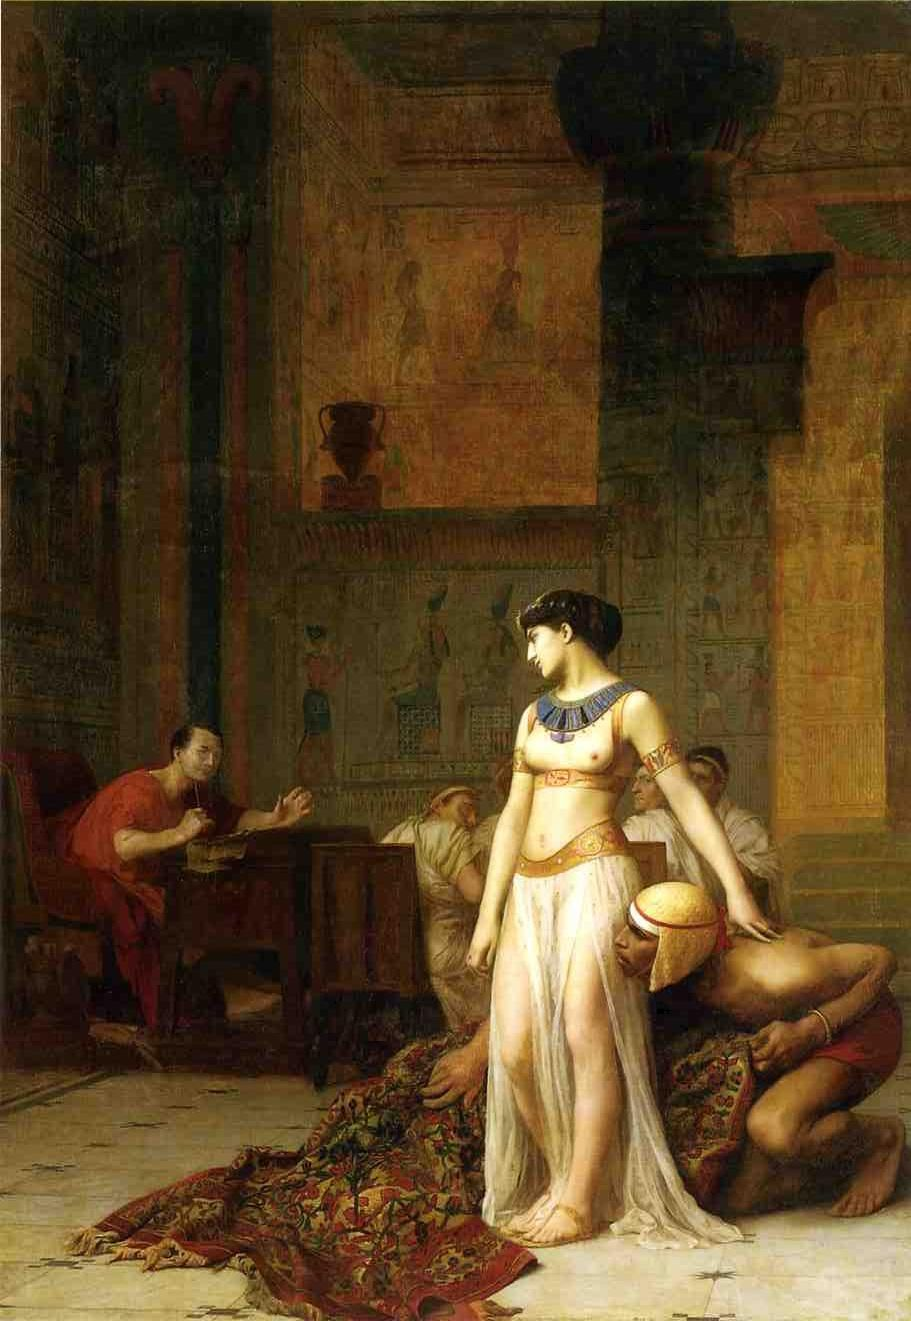 http://uploads7.wikipaintings.org/images/jean-leon-gerome/cleopatra-and-caesar.jpg